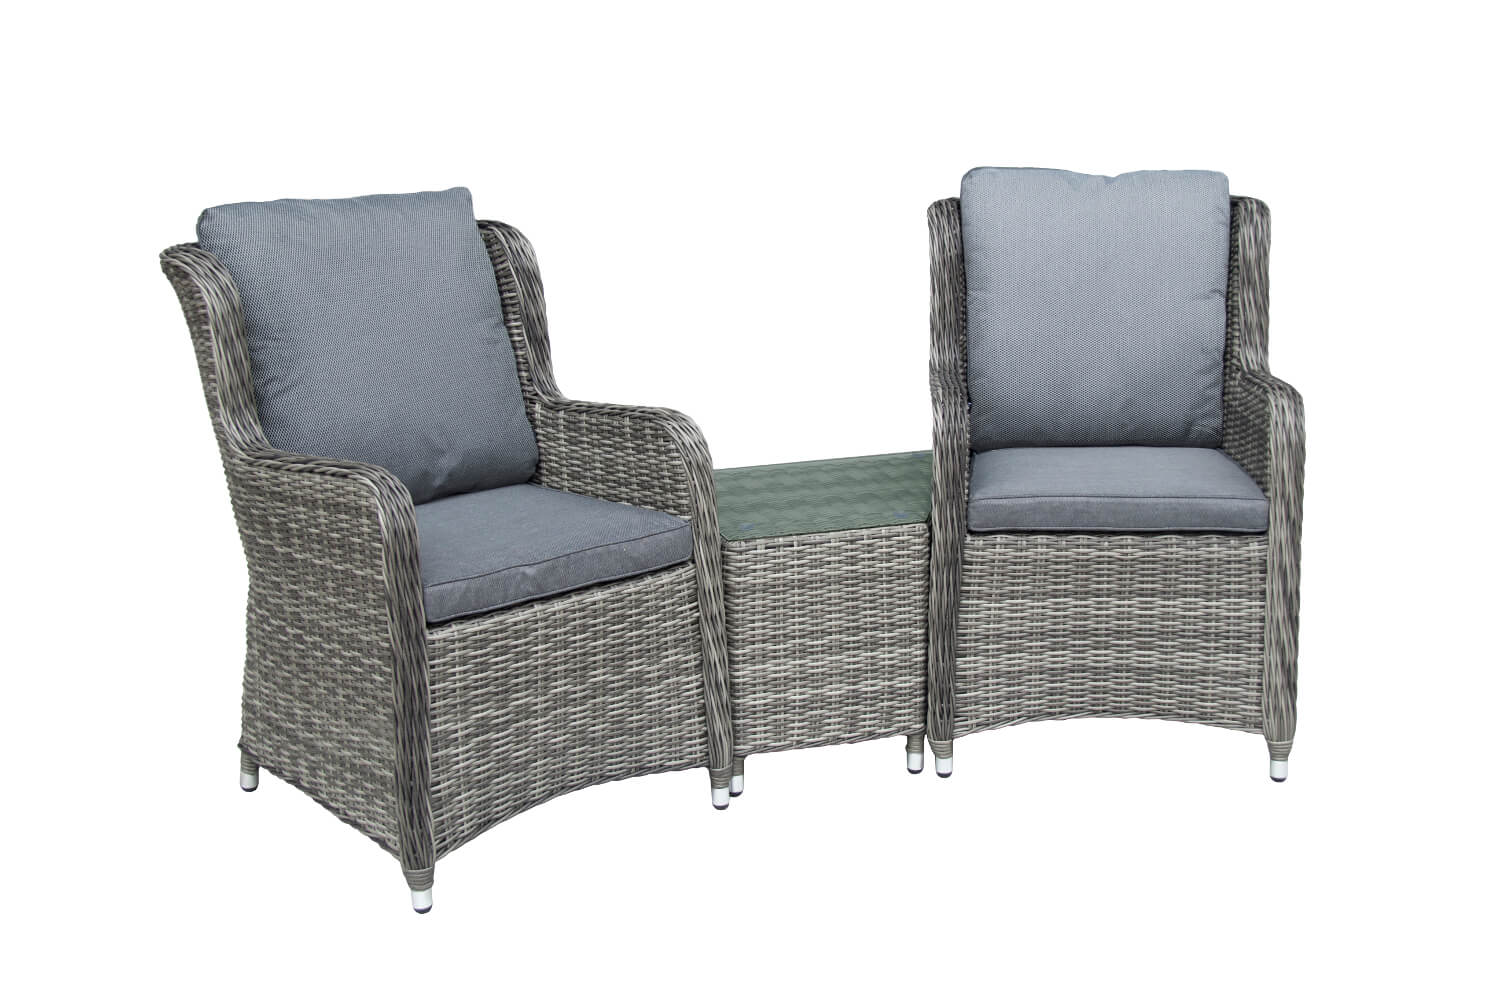 Seville Companion 2 Seater Furniture Set By Katie Blake